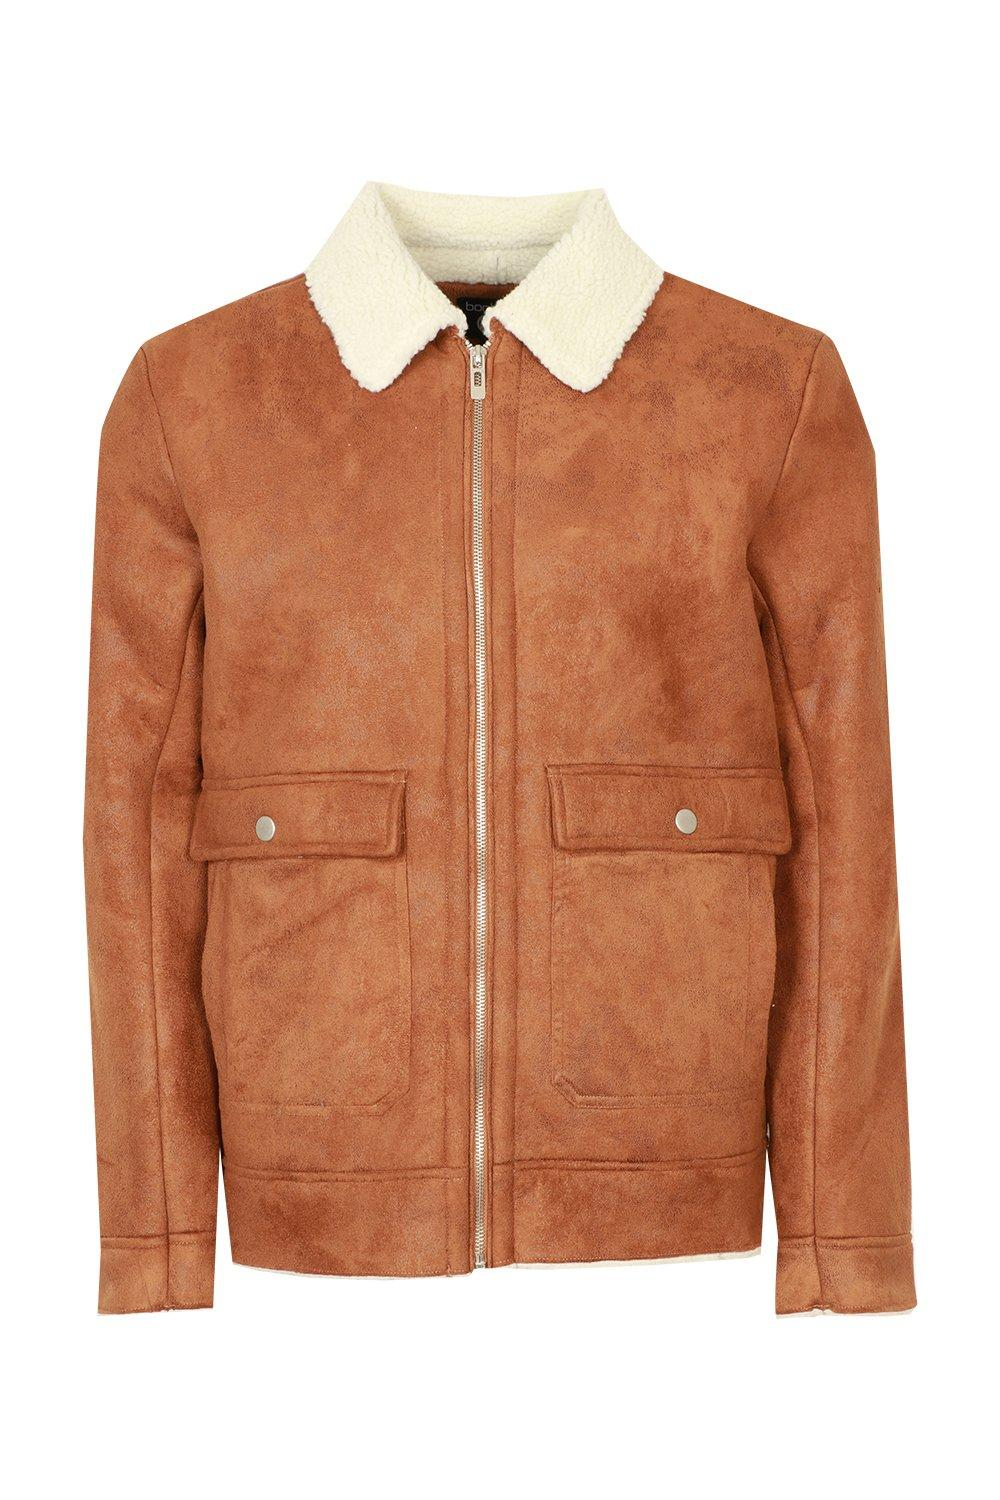 boohooMAN tan Faux Suede Jacket With Borg Collar